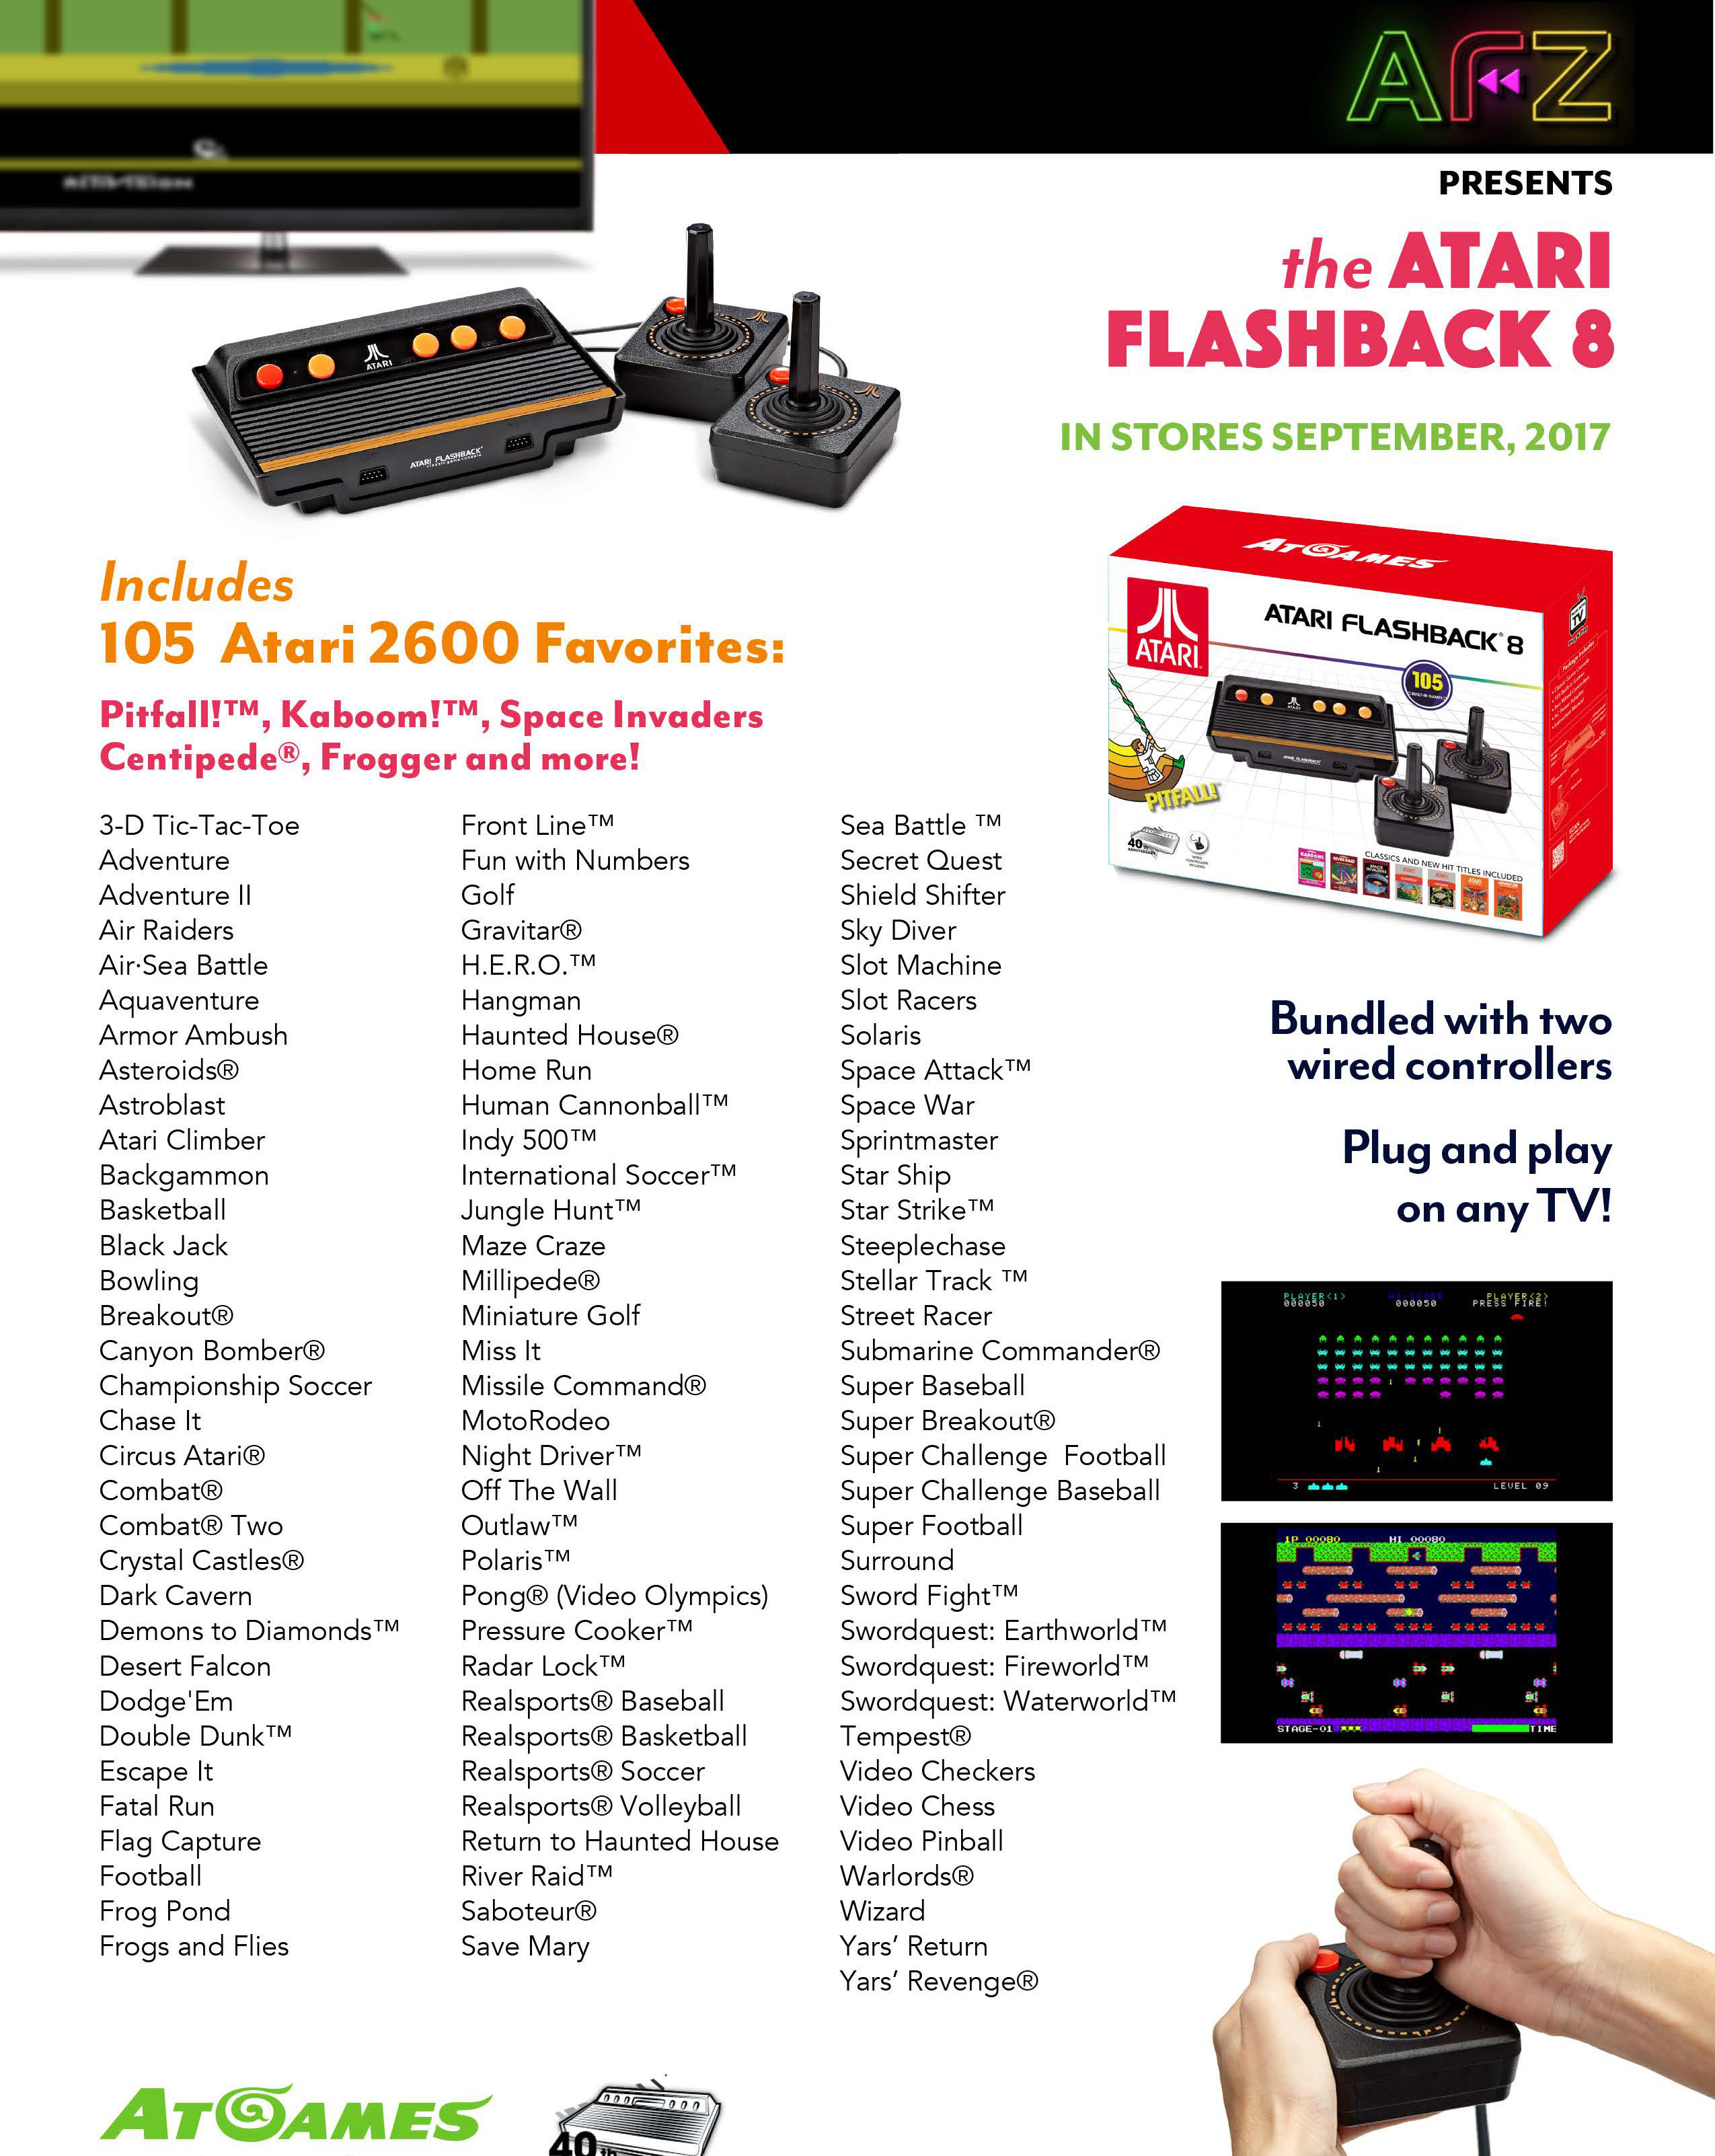 Atari Flashback series - Wikipedia